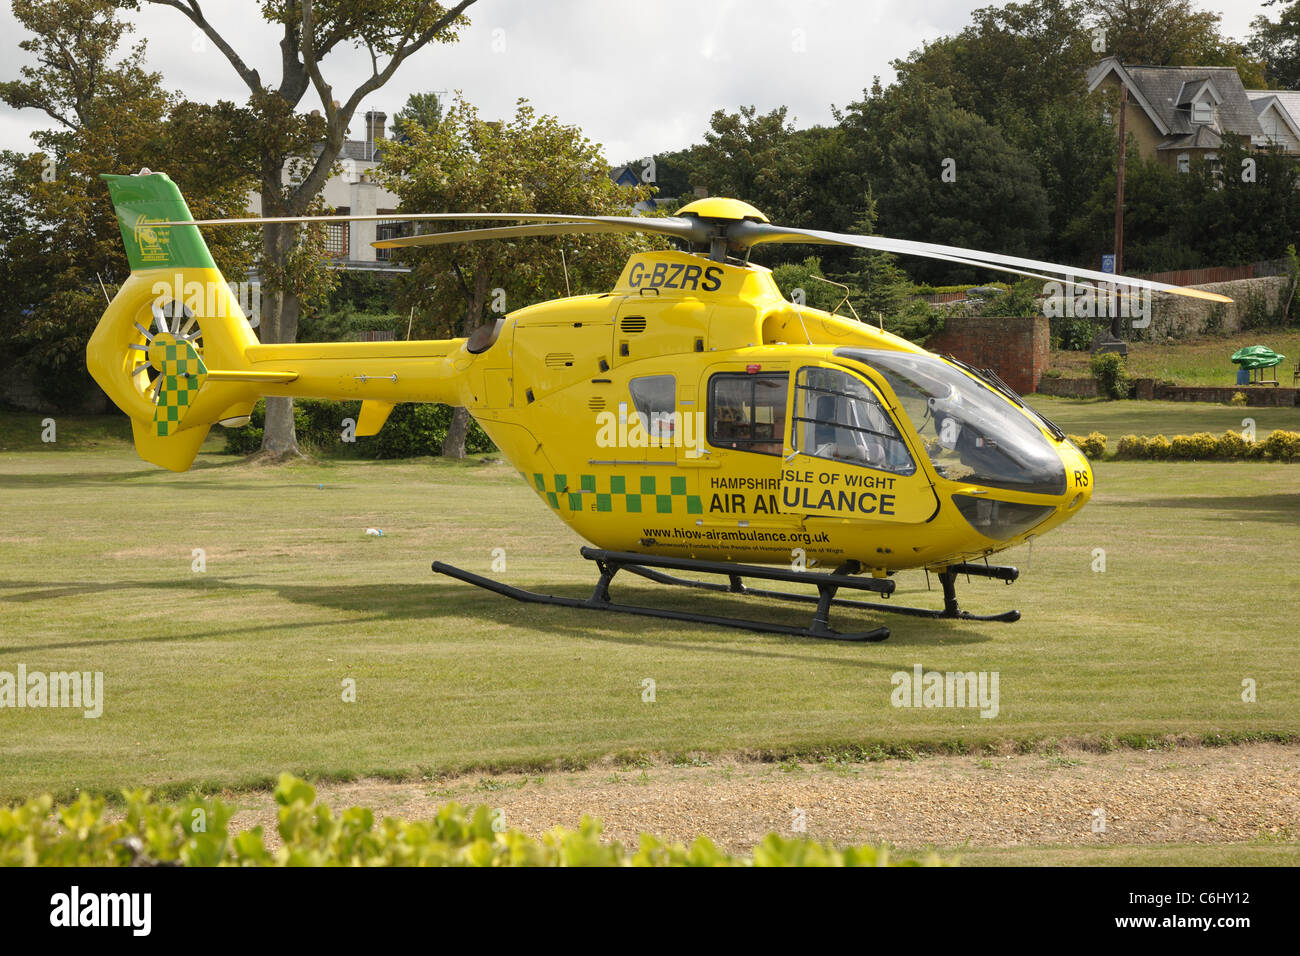 Hampshire & Isle Of Wight Eurocopter EC-135 air ambulance G-BZRS following an operational landing on a lawn. - Stock Image